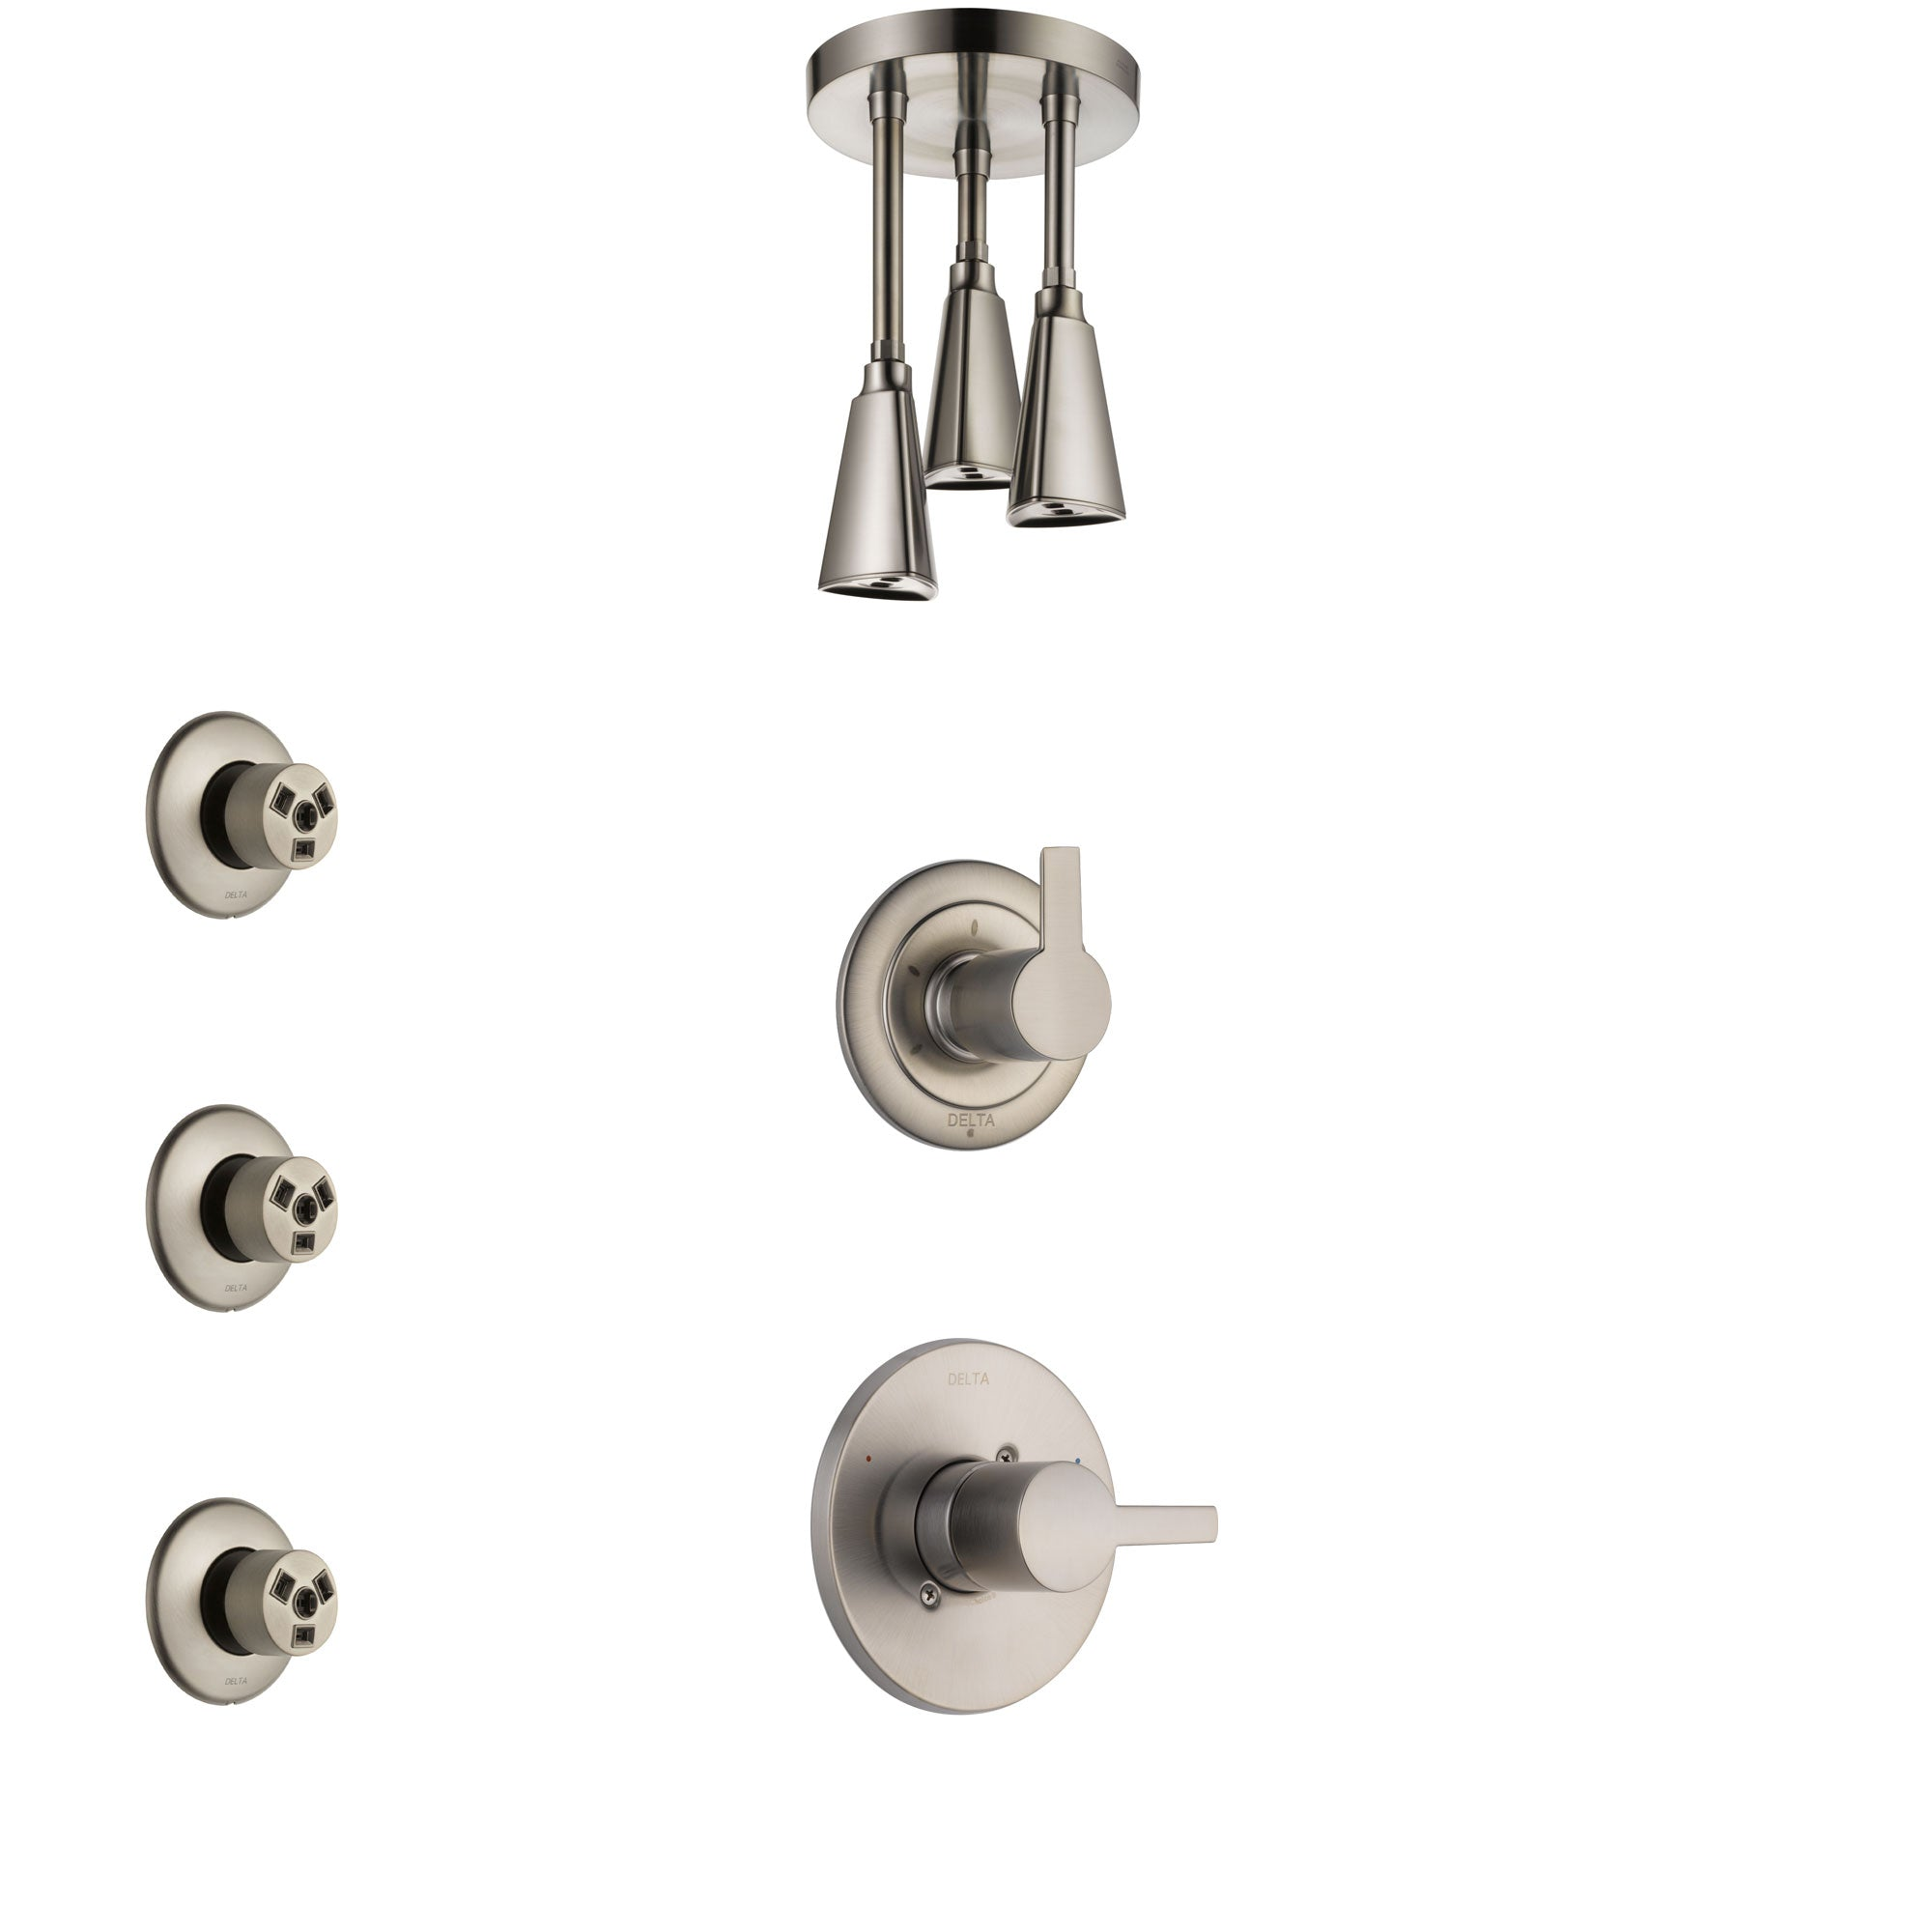 Delta Compel Stainless Steel Finish Shower System with Control Handle, 3-Setting Diverter, Ceiling Mount Showerhead, and 3 Body Sprays SS1461SS2